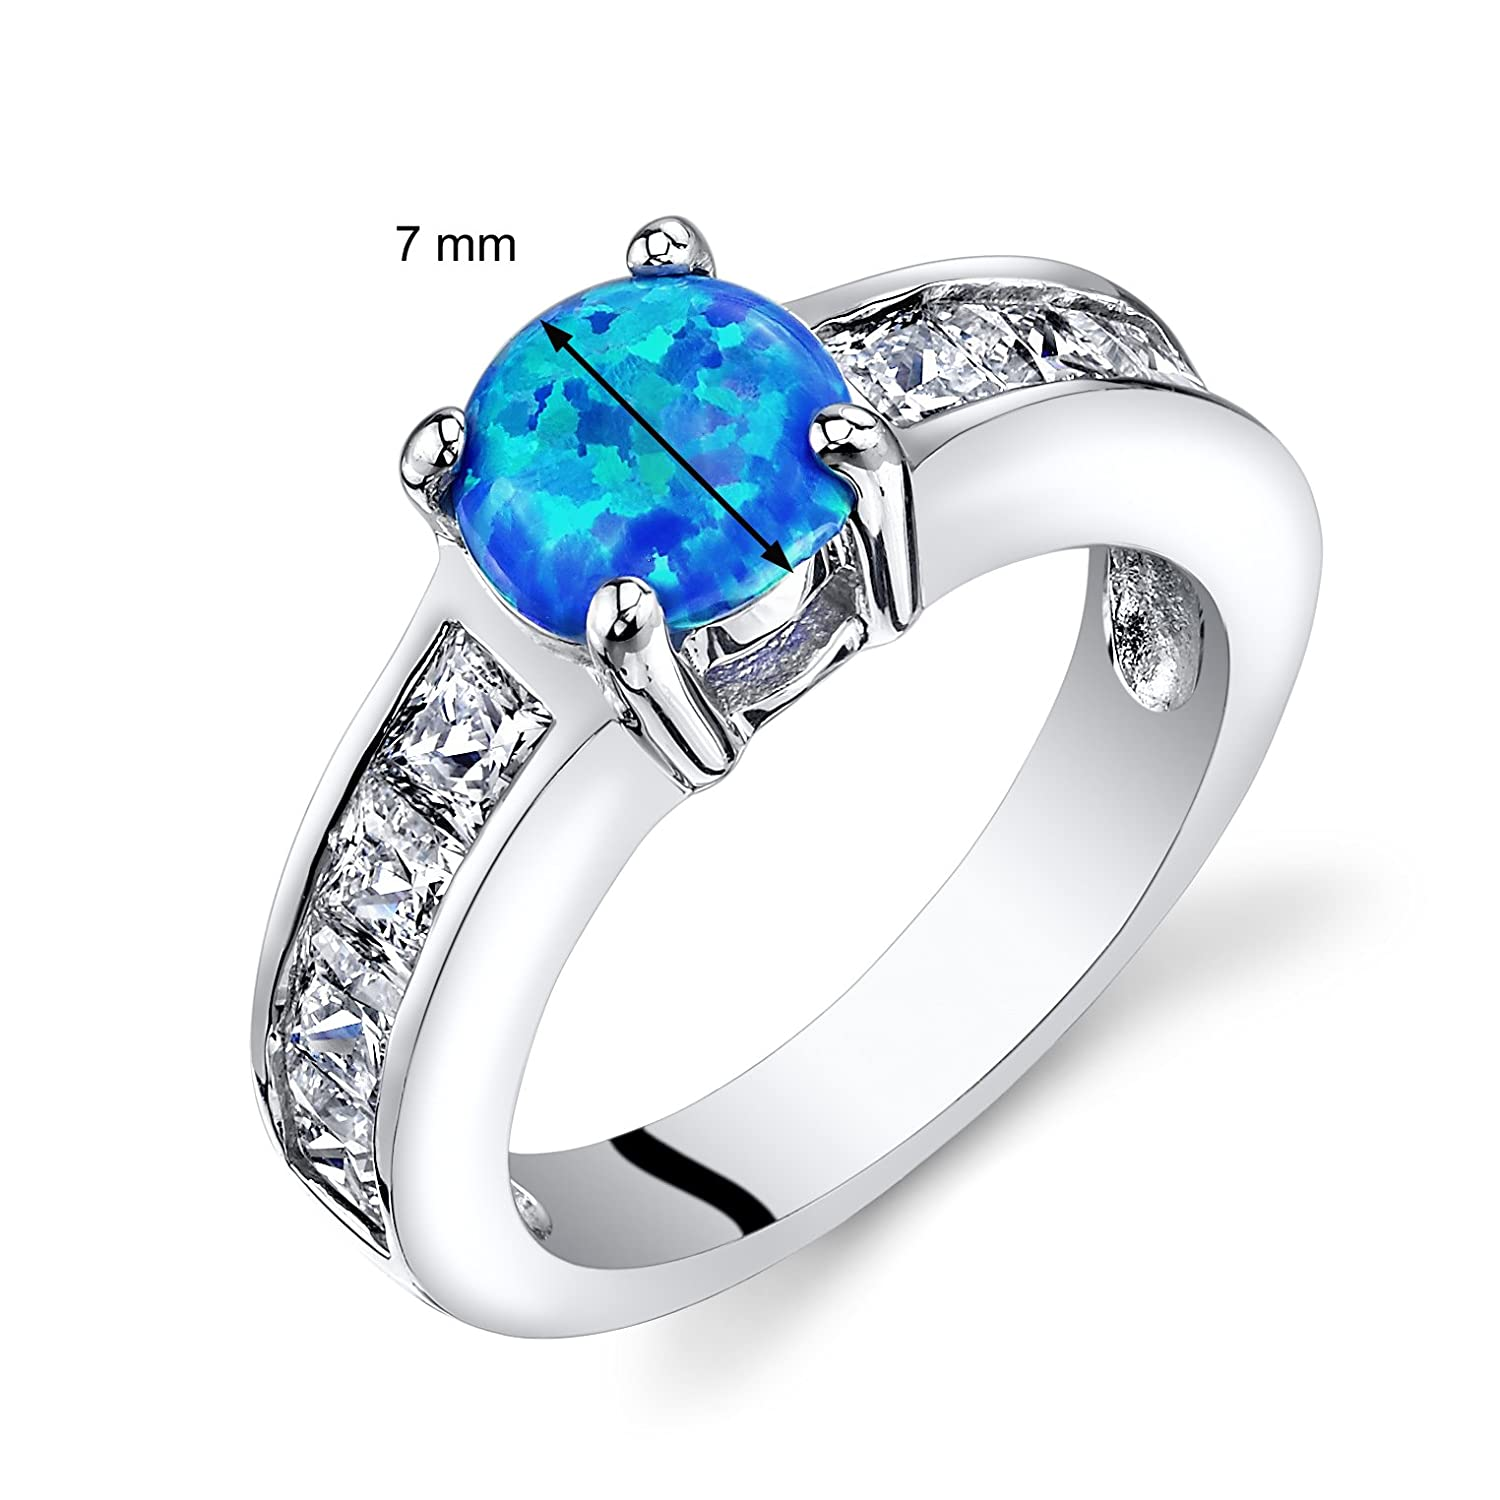 Peora Created Blue Opal Mezzo Channel Ring Sterling Silver 1.00 Carats Sizes 5 to 9